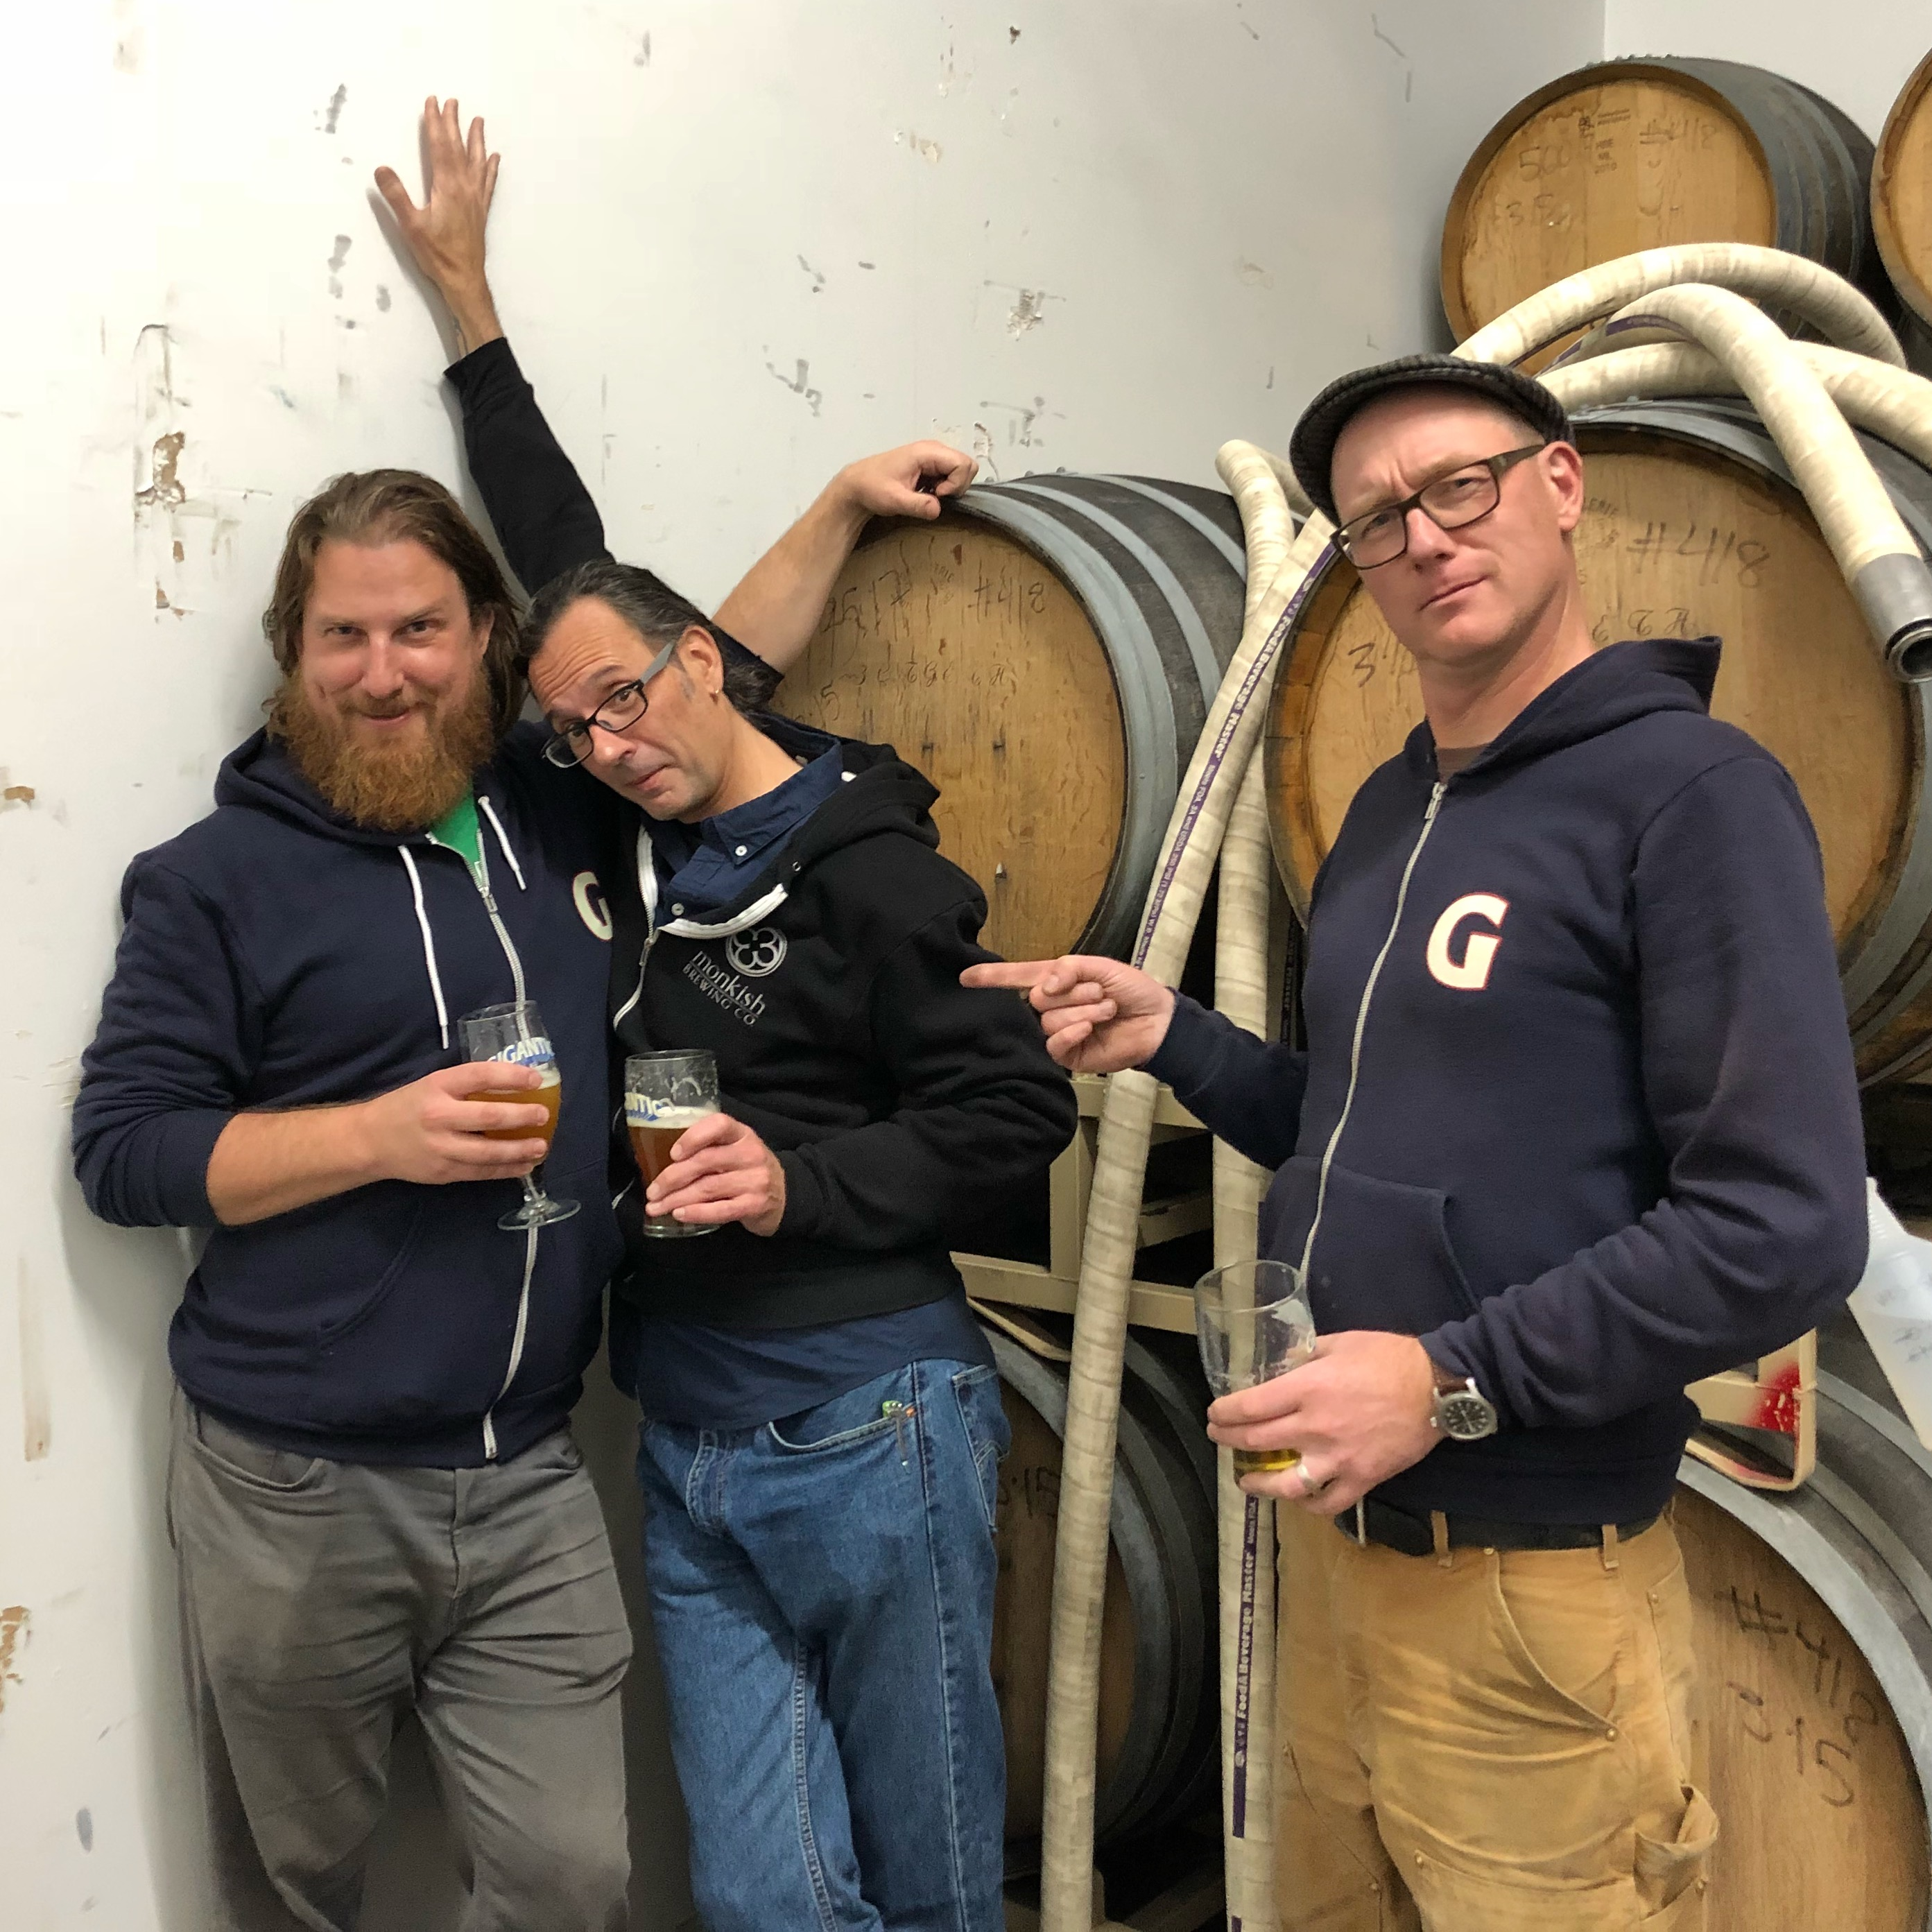 Ben Love and Van Havig of Gigantic Brewing surround Ron Jeffries from Jolly Pumpkin.